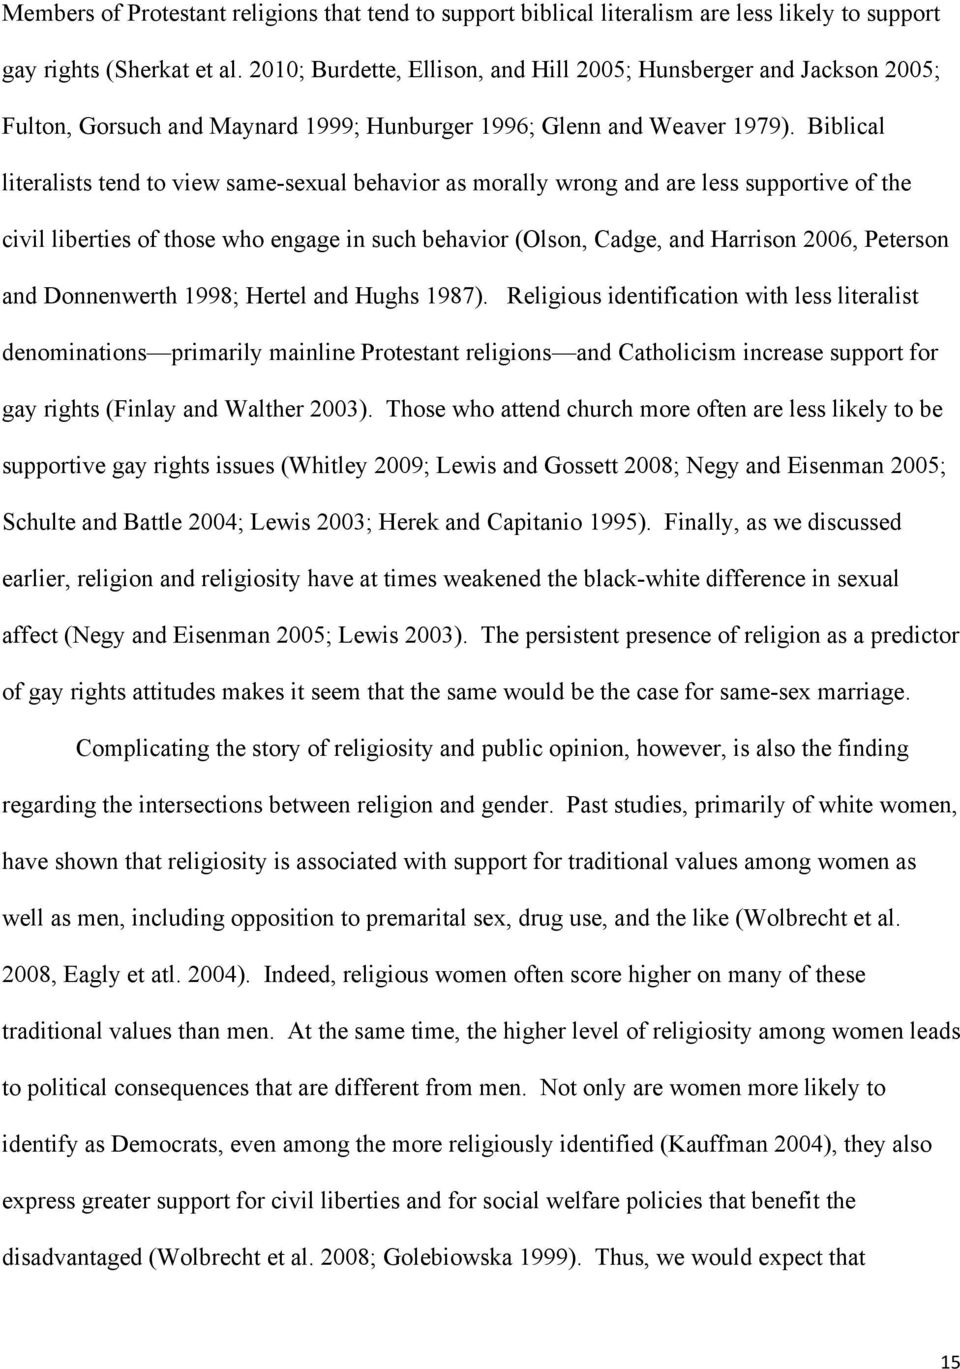 Biblical literalists tend to view same-sexual behavior as morally wrong and are less supportive of the civil liberties of those who engage in such behavior (Olson, Cadge, and Harrison 2006, Peterson